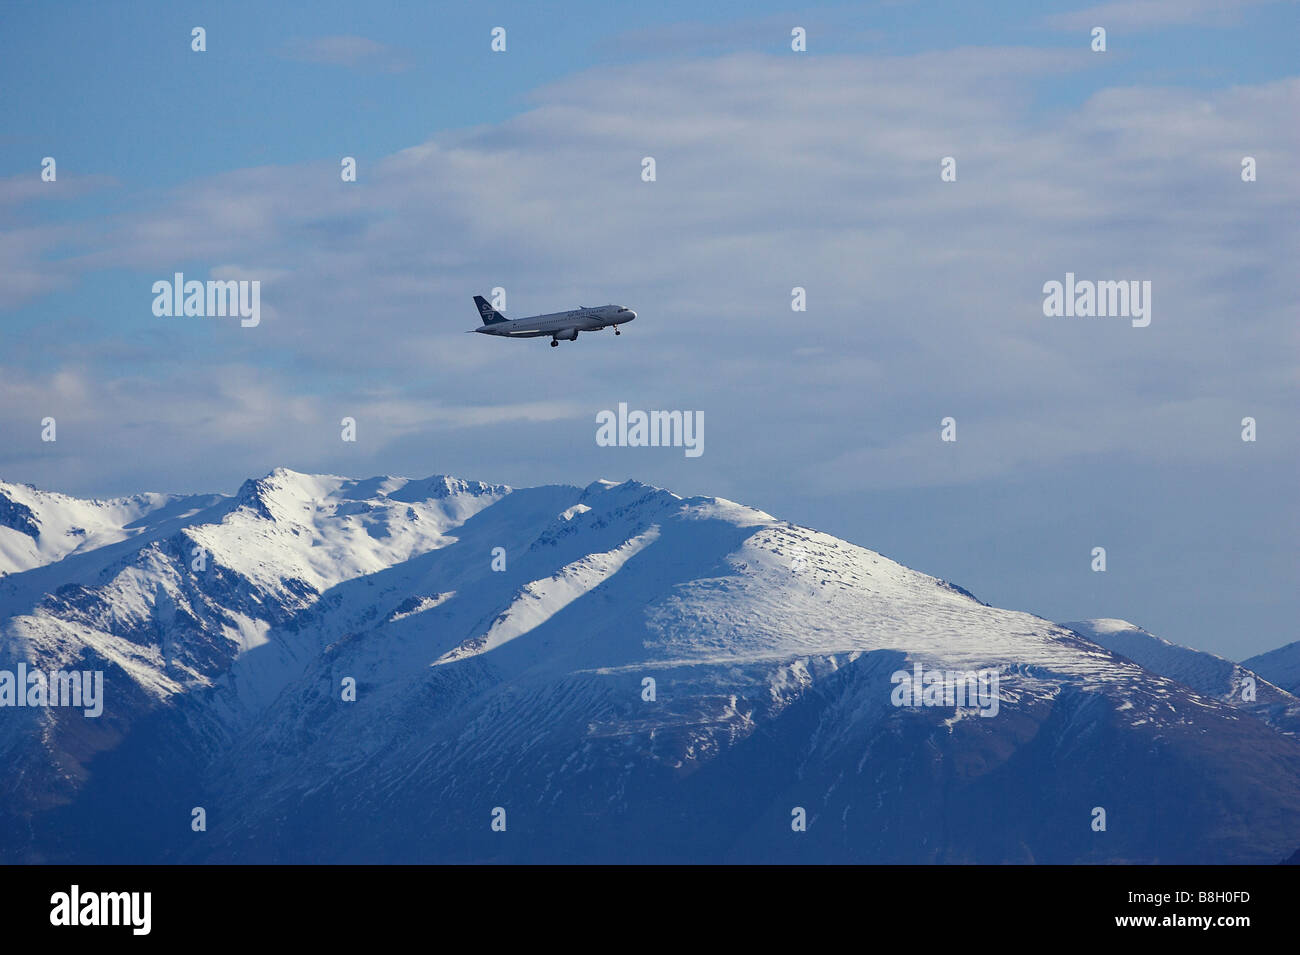 Air New Zealand Jet over Snowy Mountains near Queenstown South Island New Zealand Stock Photo